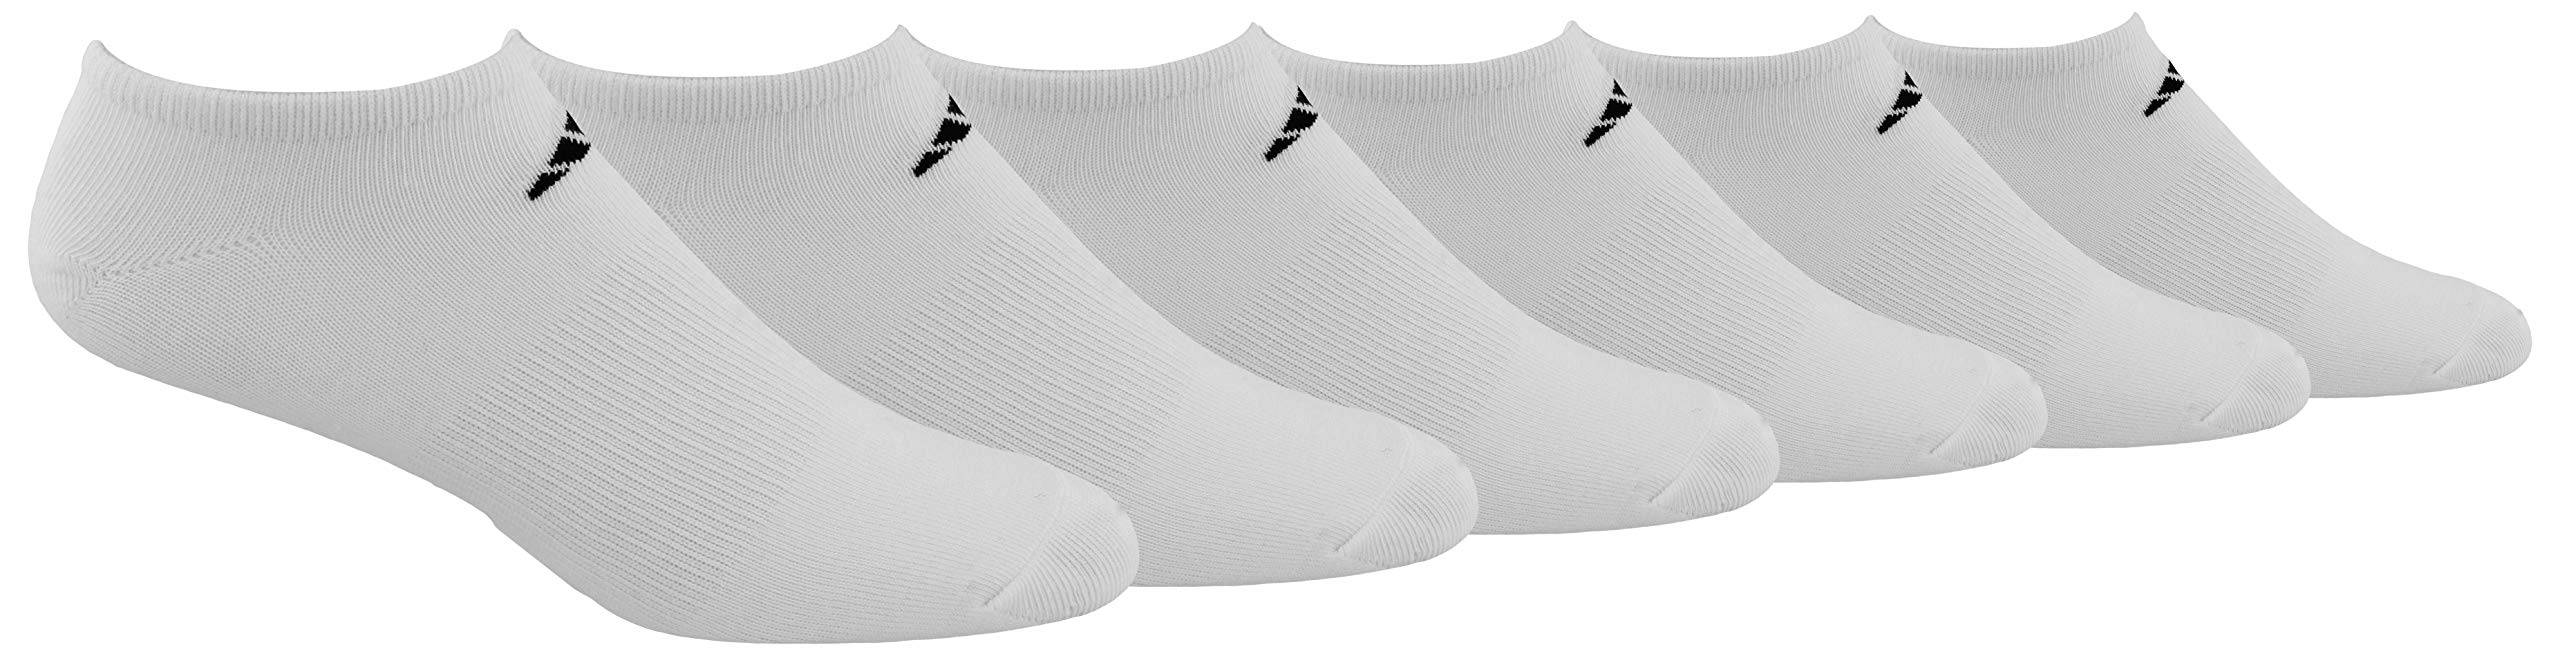 adidas Men's Superlite Low Cut Socks with arch compression (6-Pair),White/ Black,XL, (Shoe Size 12-15) by adidas